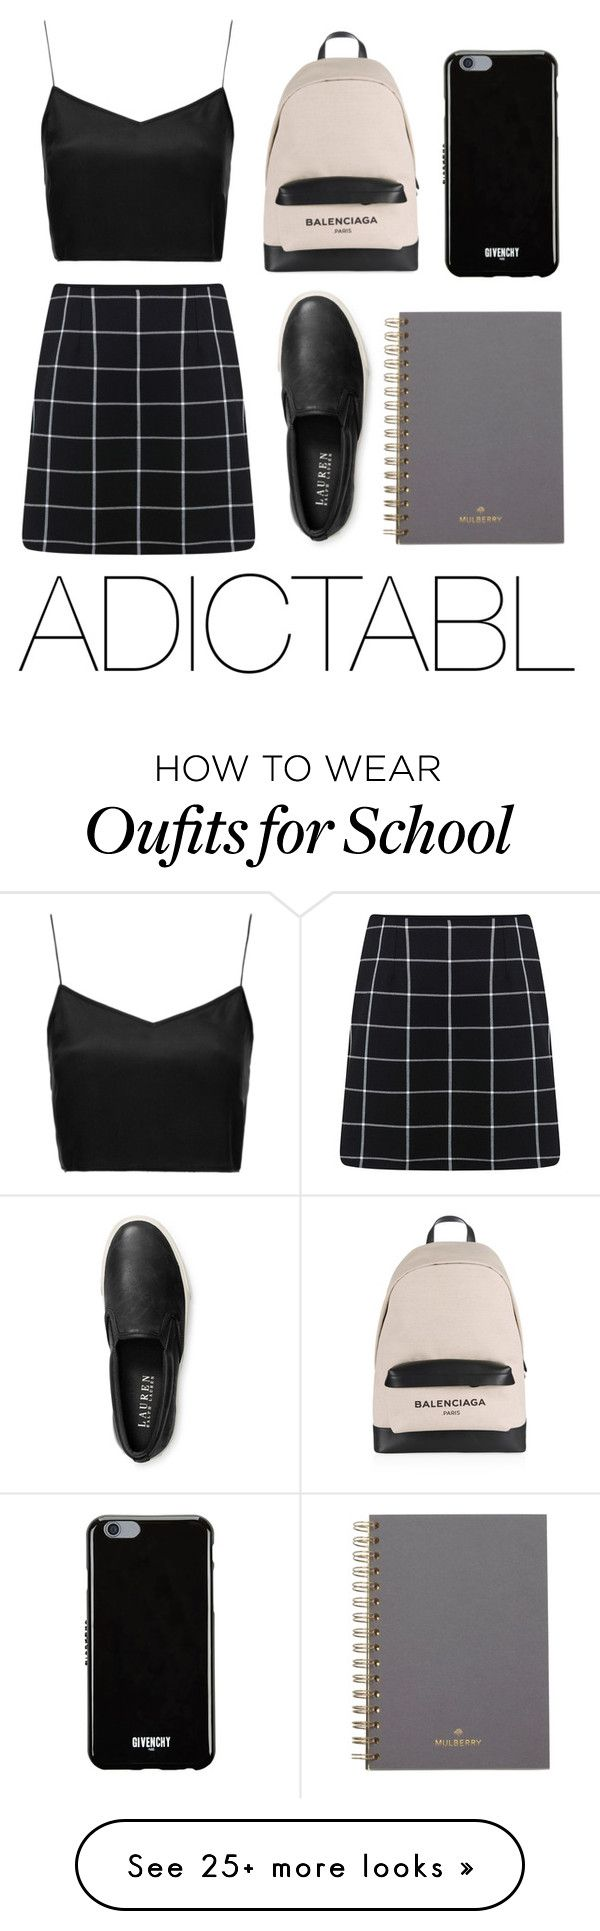 """ADICTABL- SCHOOL NO.1"" by adictabl on Polyvore featuring Boutique, Miss Selfridge, Balenciaga, Givenchy, Ralph Lauren, Mulberry, school, ralphlauren and adictabl"